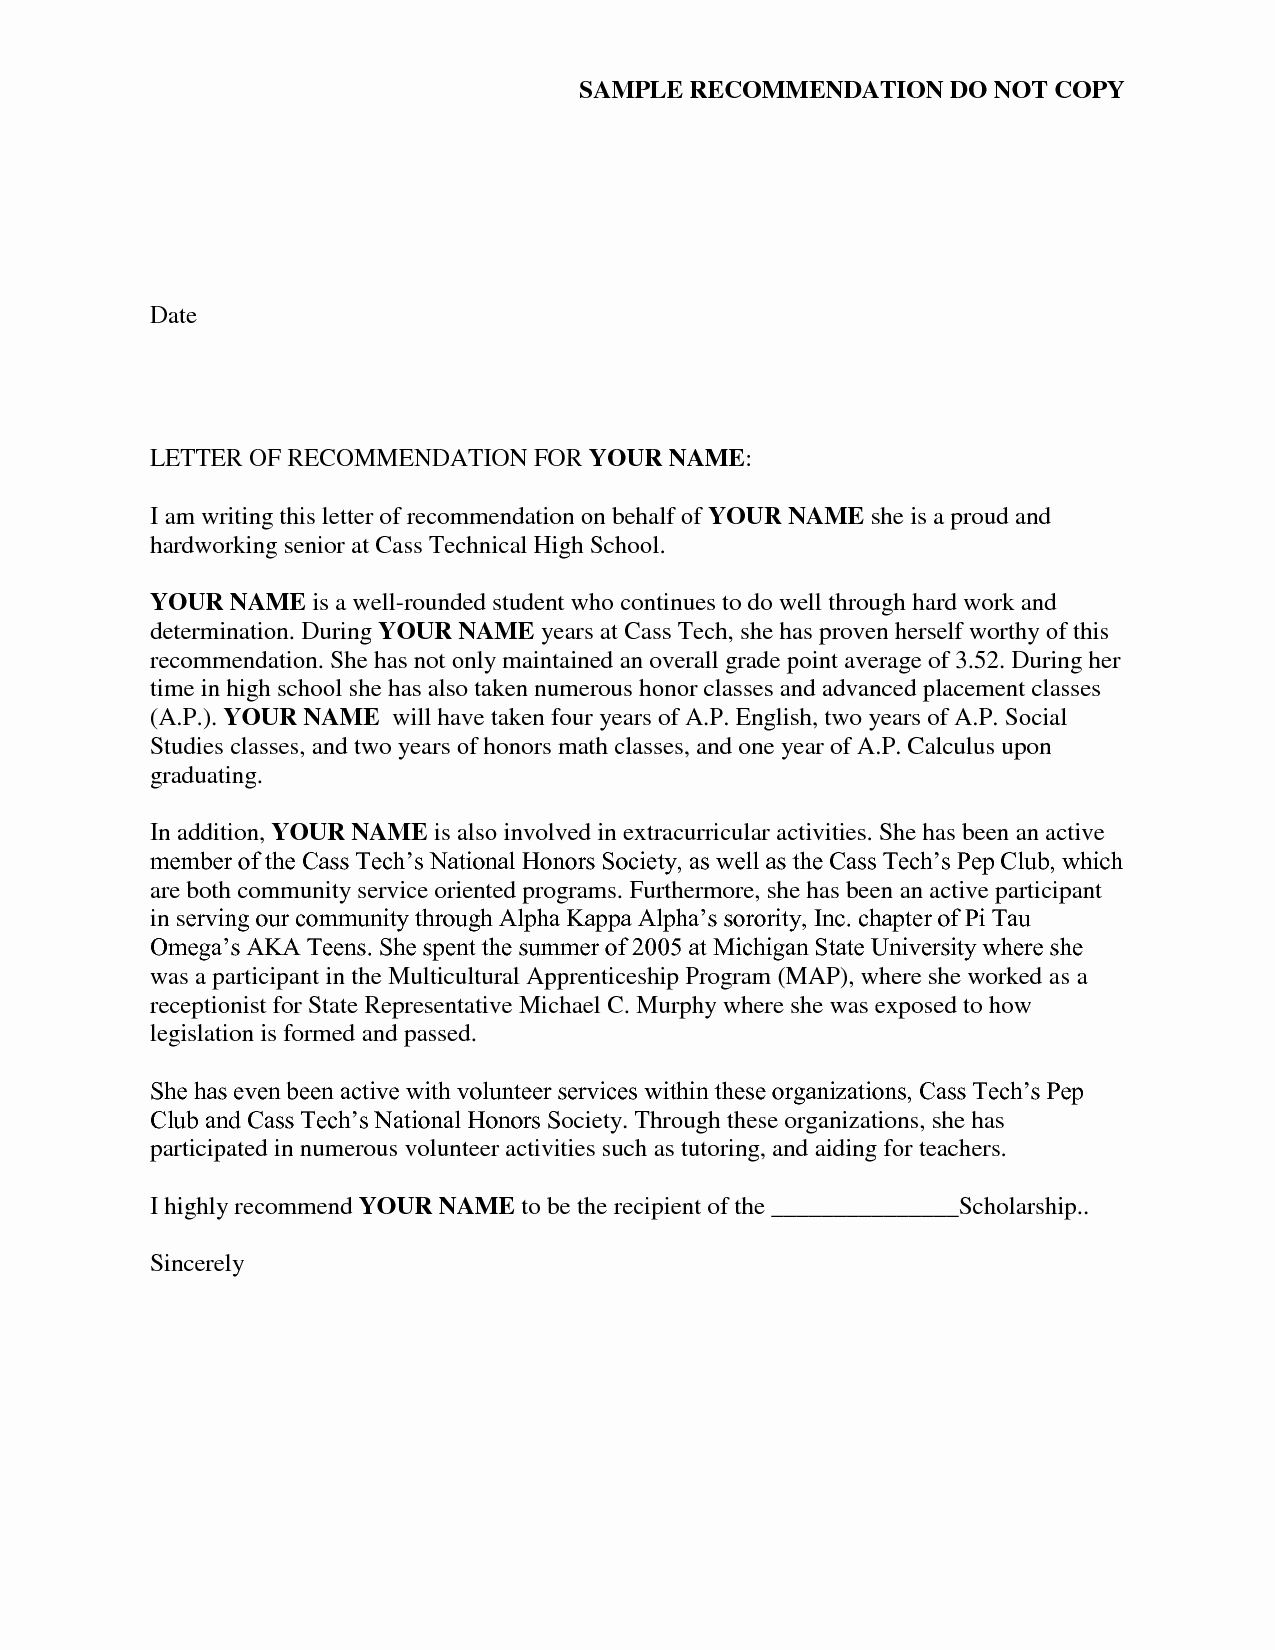 Sample sorority Recommendation Letter Fresh Reference Letter Of Re Mendation Sample